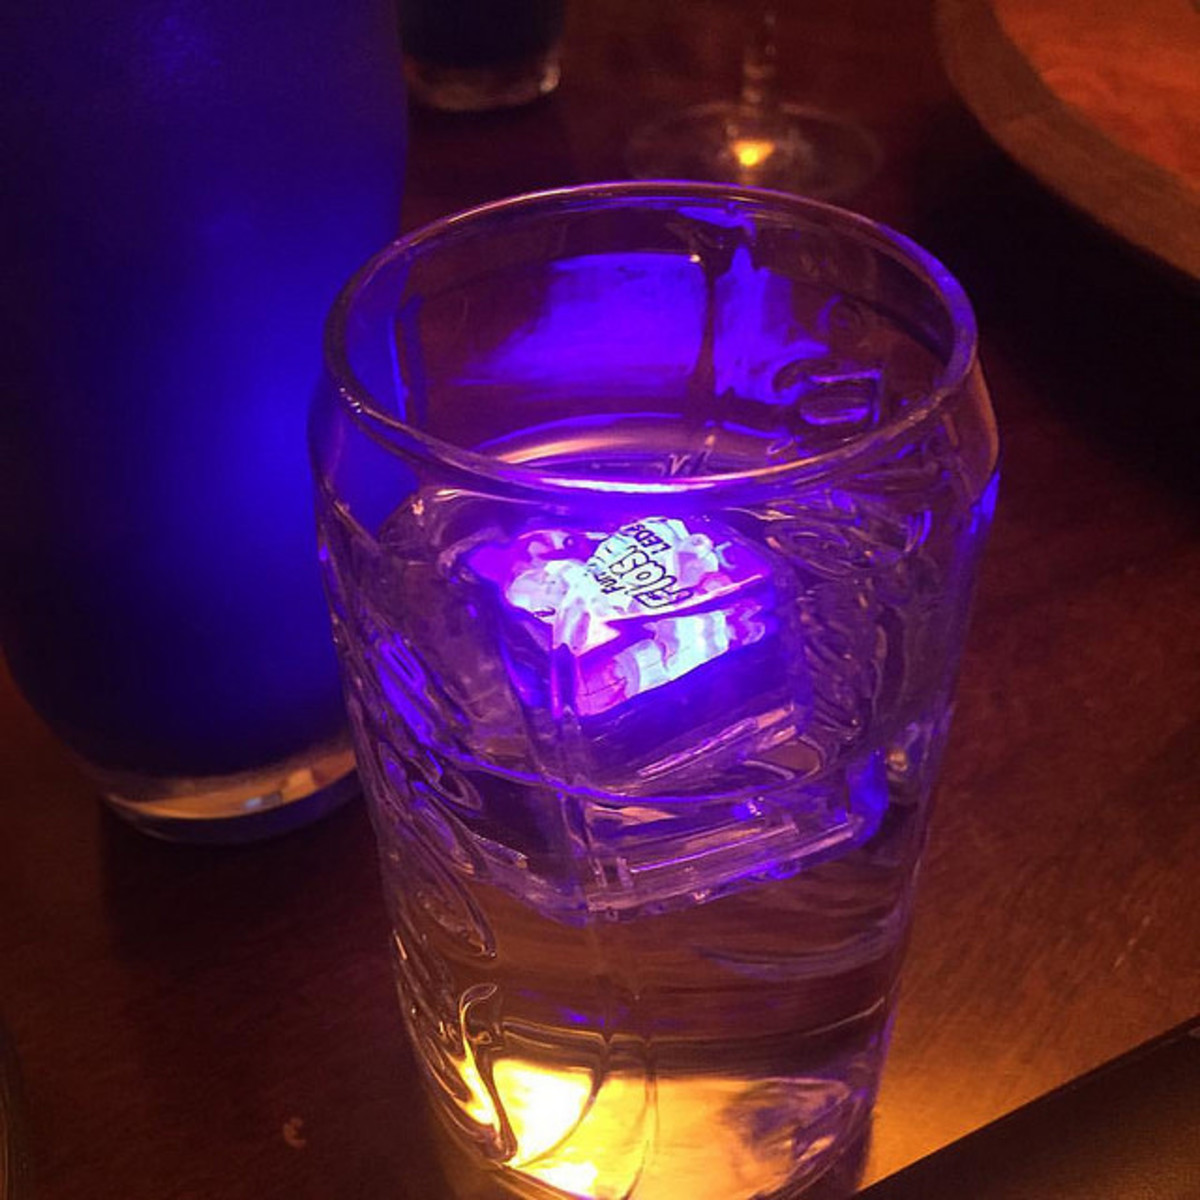 LED ice cubes are an easy way to light up your party.